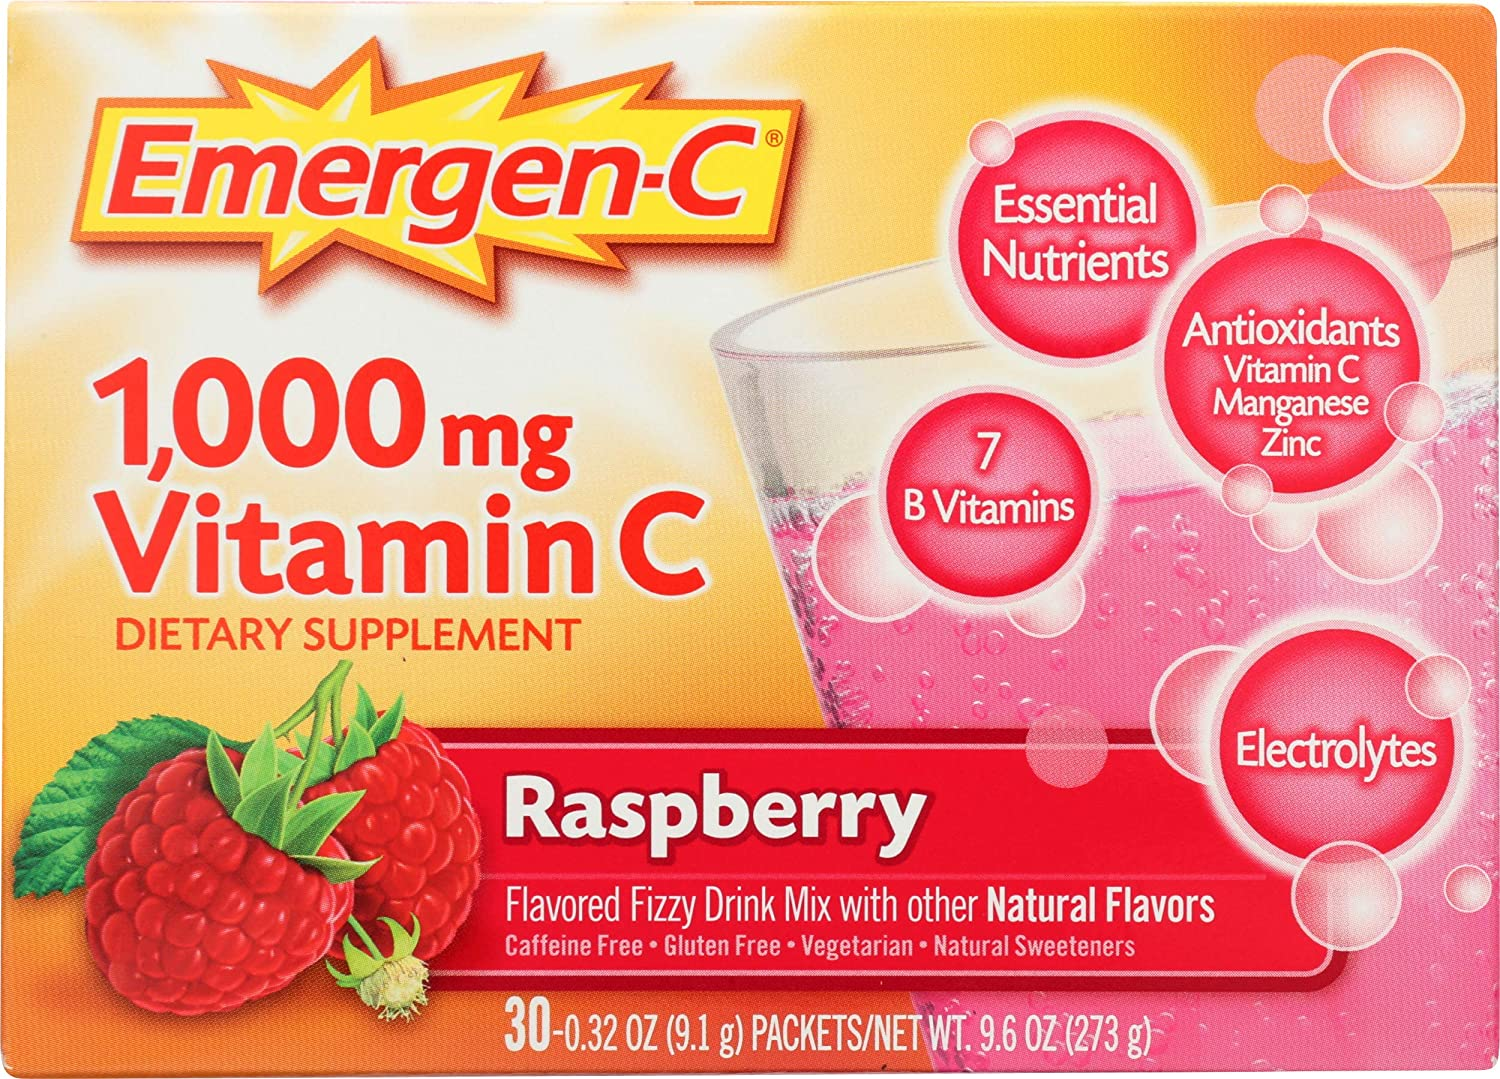 Emergen-C 1000mg Vitamin C Powder, with Antioxidants, B Vitamins and Electrolytes, Immunity Supplements for Immune Support, Caffeine Free Fizzy Drink Mix, Raspberry Flavor - 30 Count/1 Month Supply: Health & Personal Care